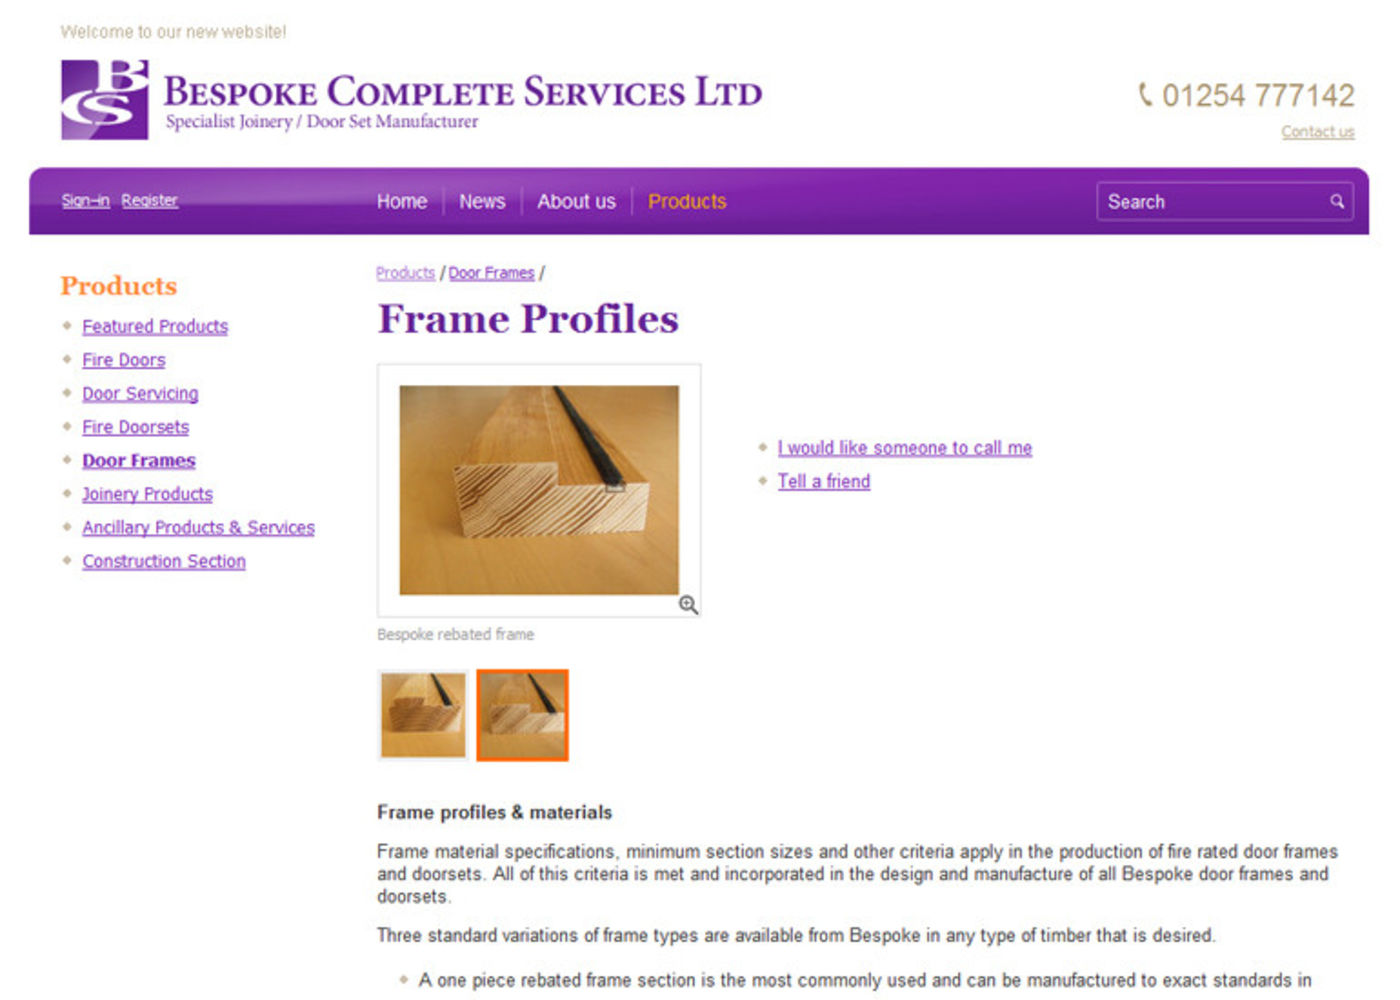 Bespoke Complete Services Ltd Product